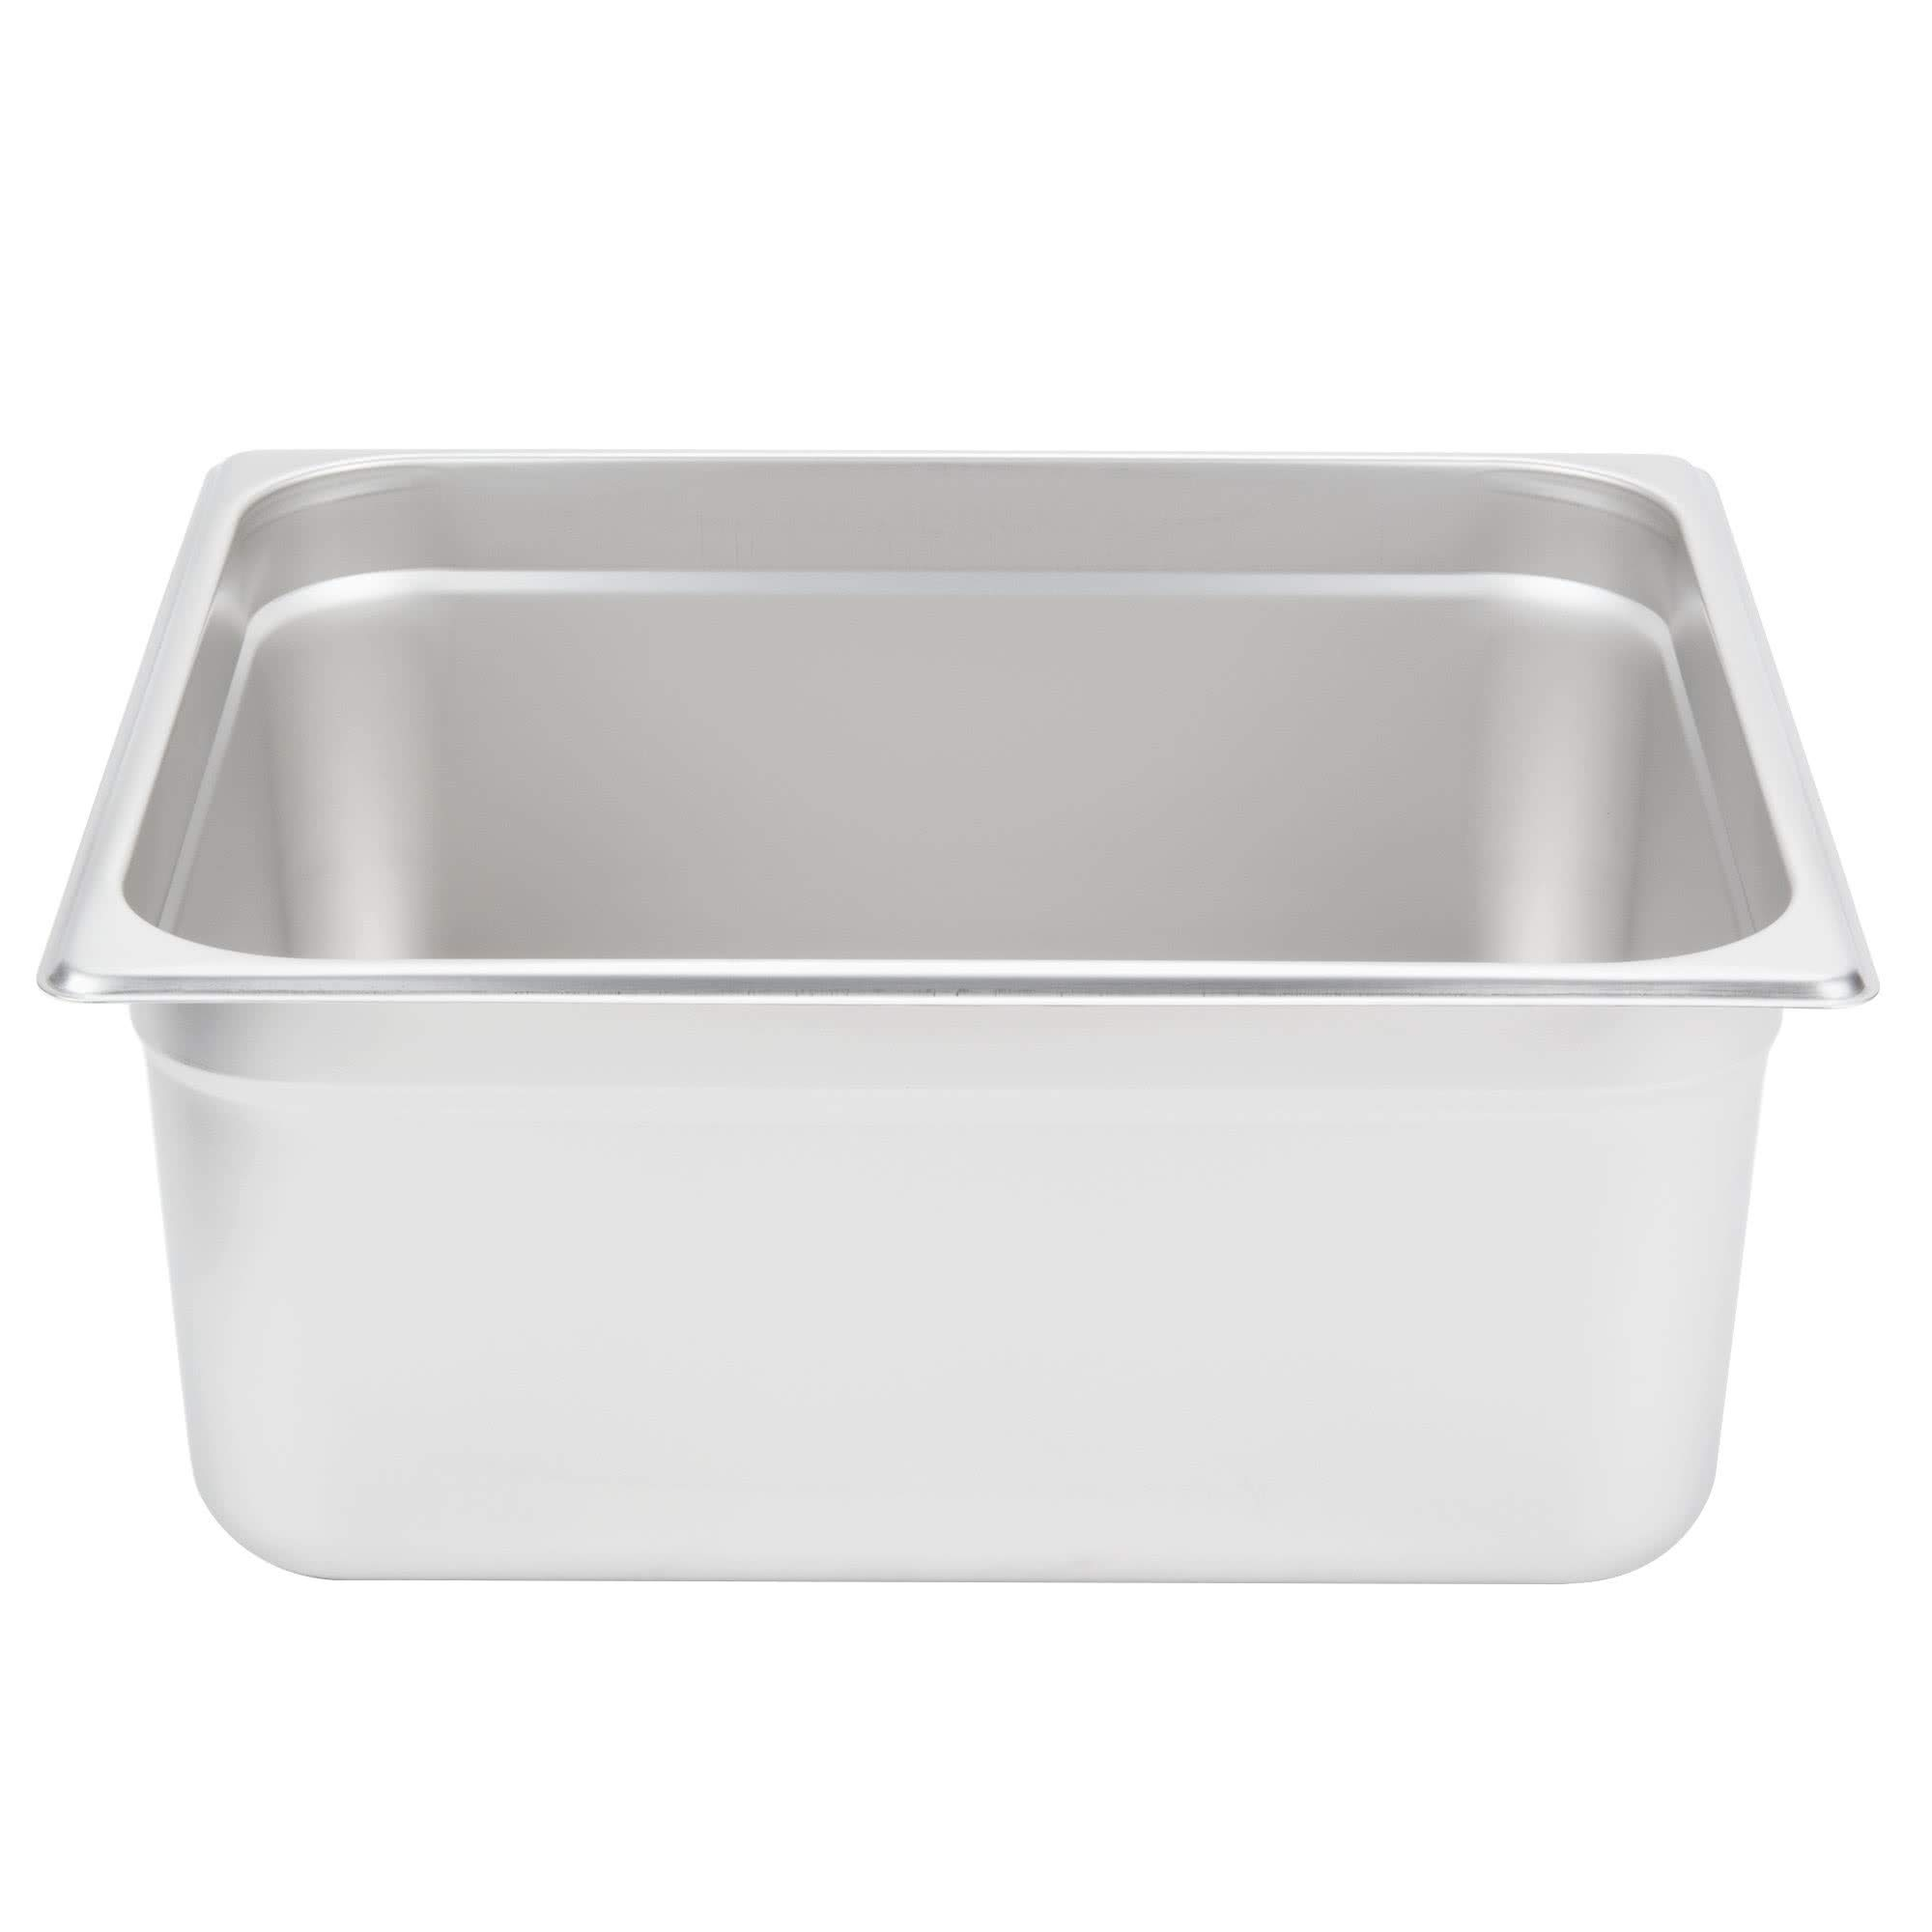 TableTop King 2/3 Size Standard Weight Anti-Jam Stainless Steel Steam Table/Hotel Pan - 6'' Deep by TableTop King